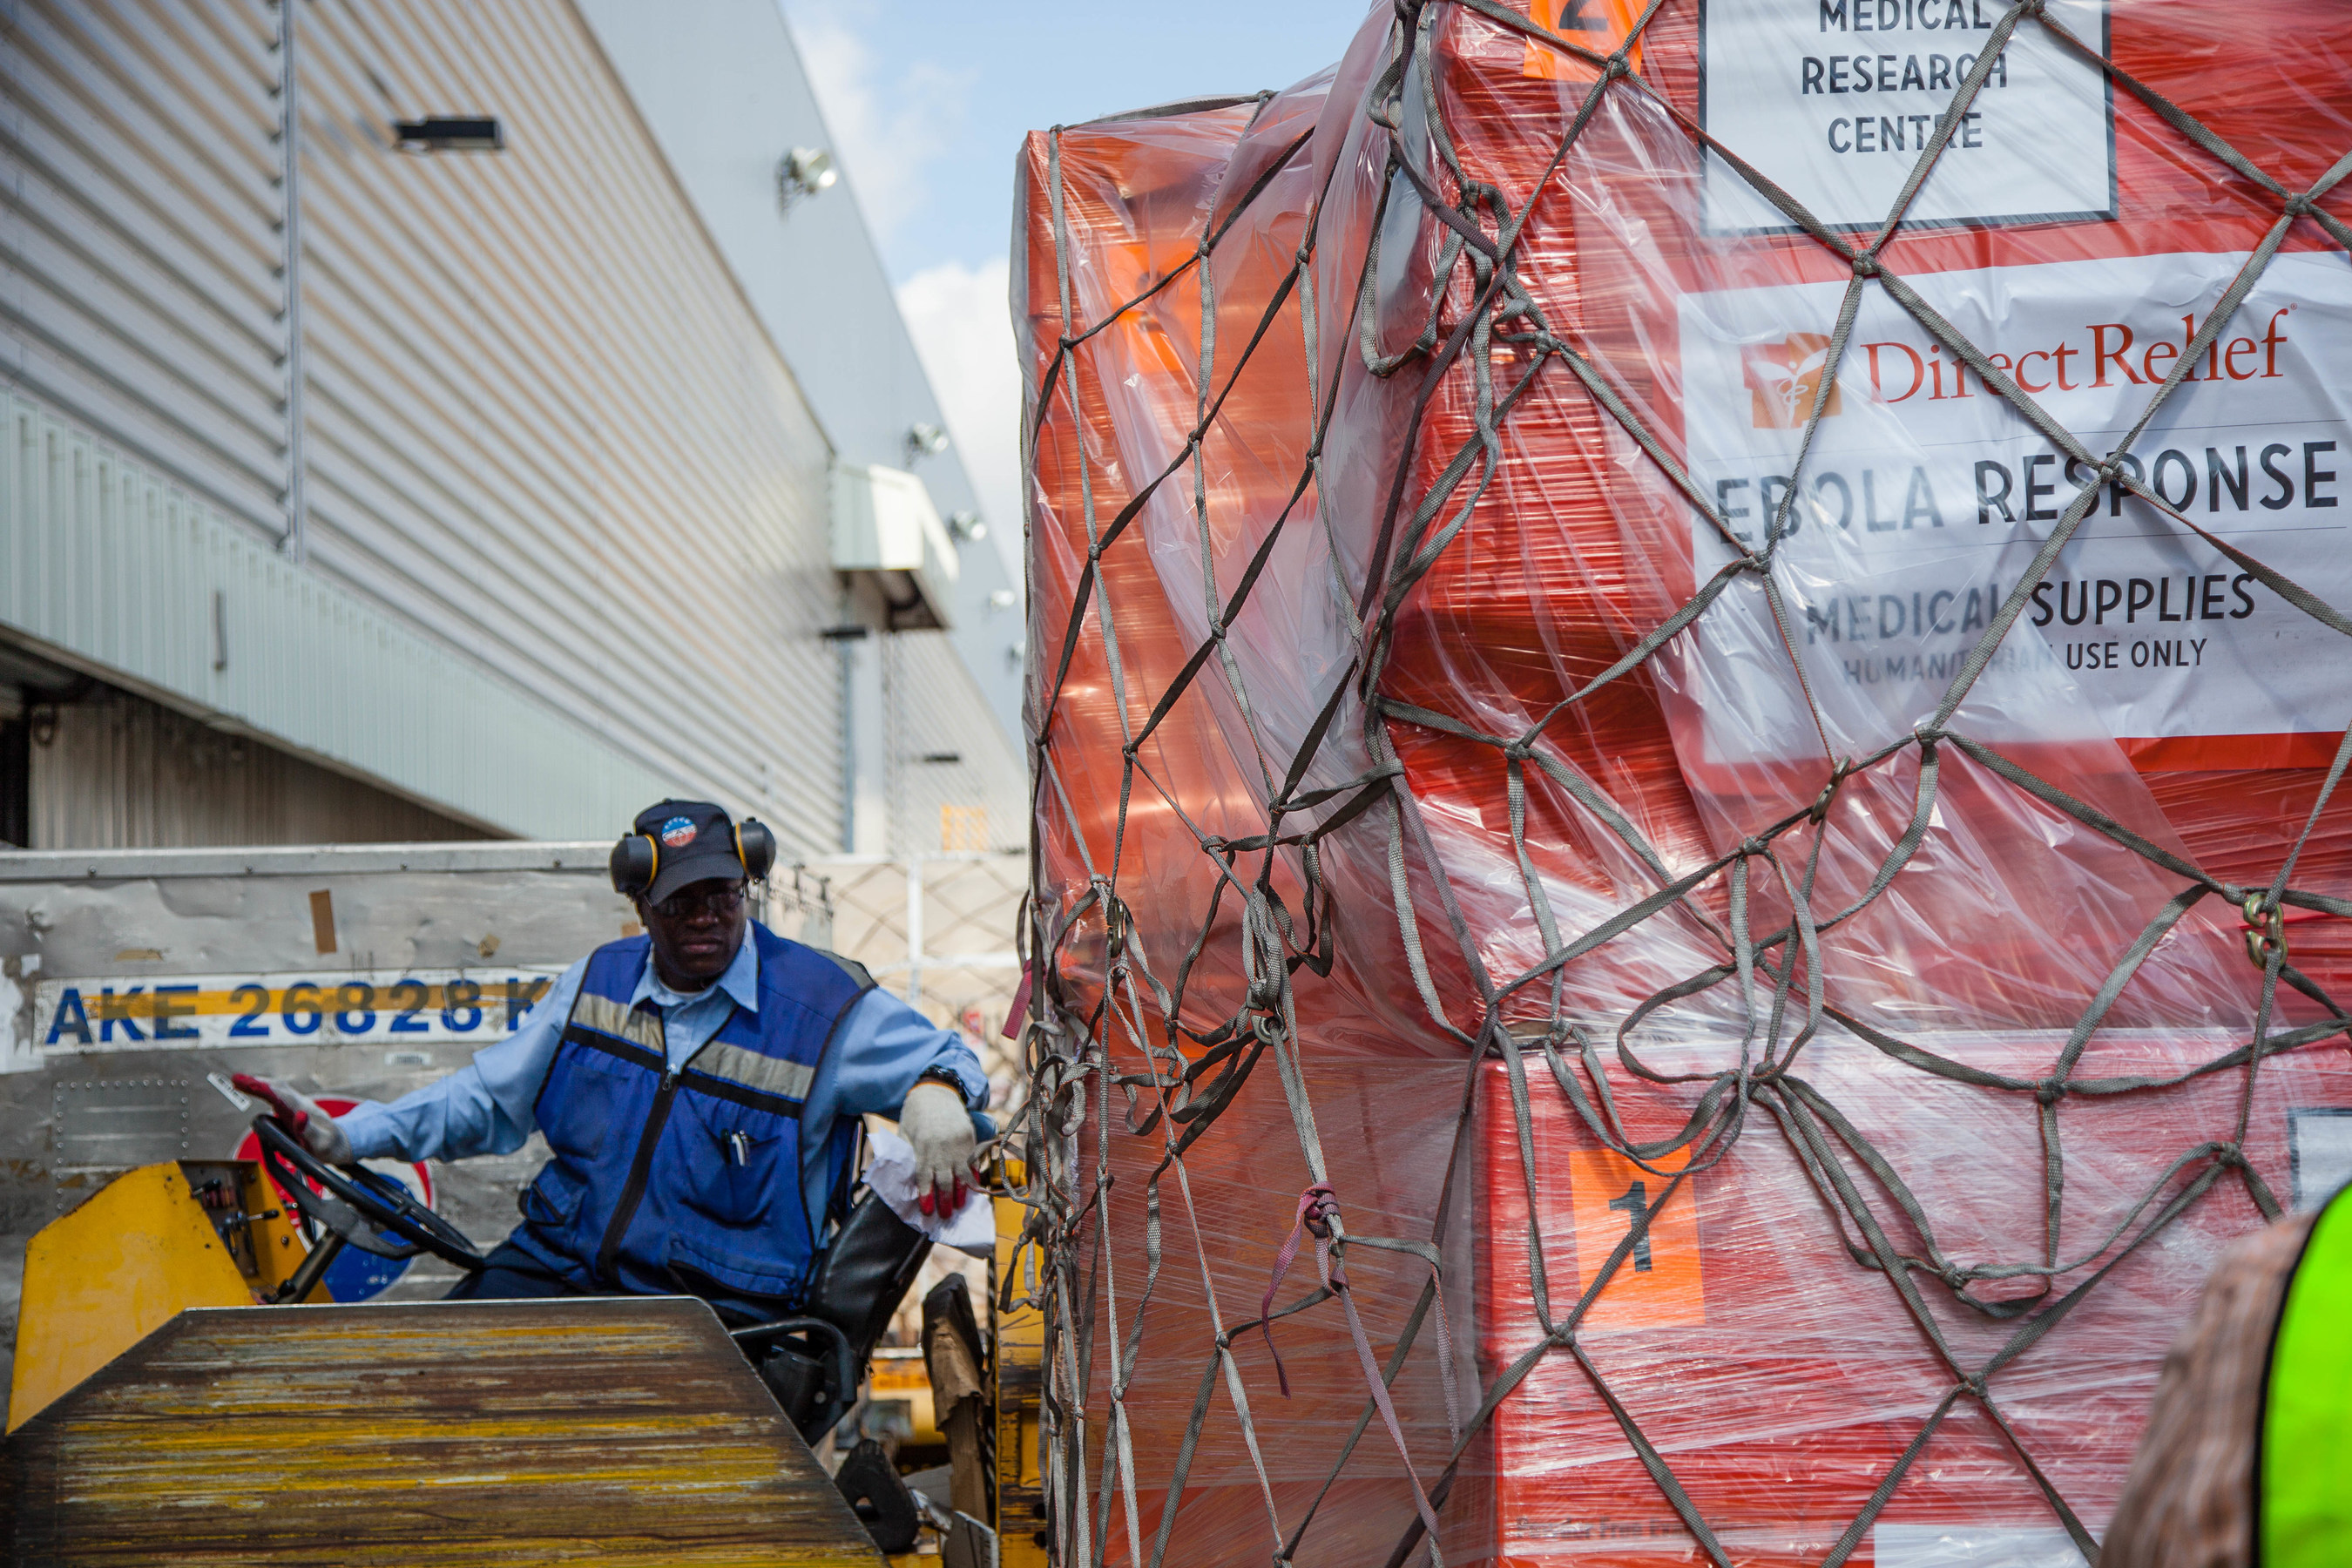 Offloading Ebola relief supplies from Direct Relief to aid in response efforts.